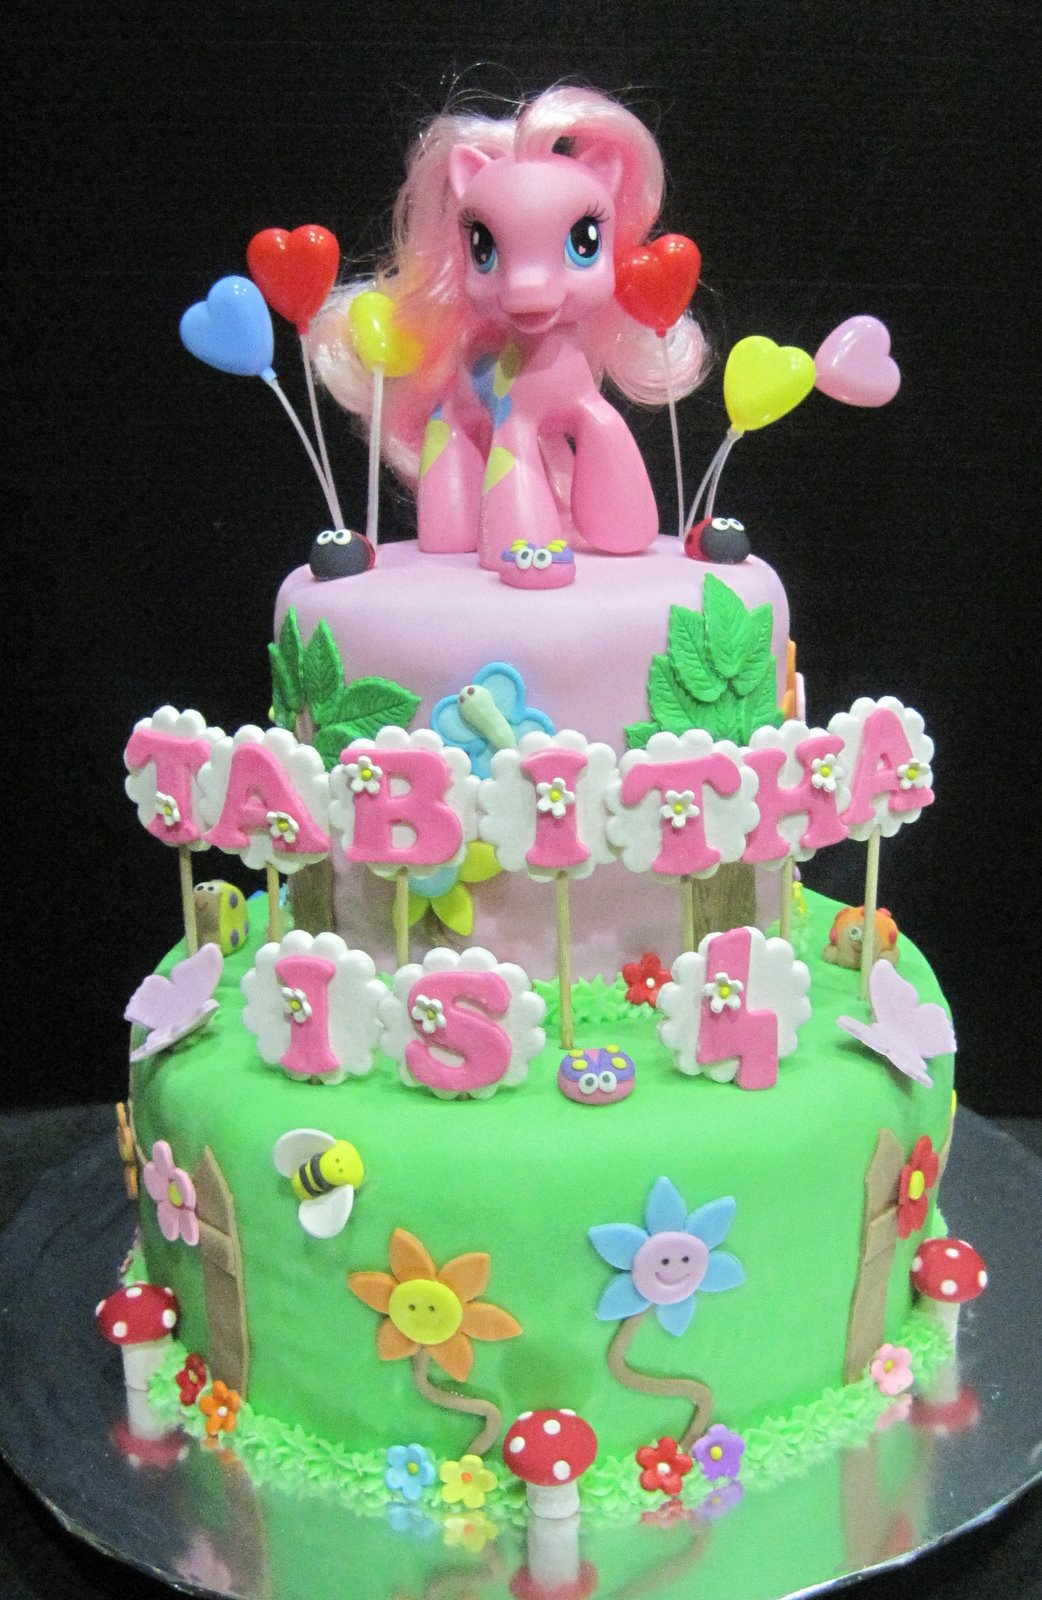 Cupcake Divinity: My Little Pony Cake